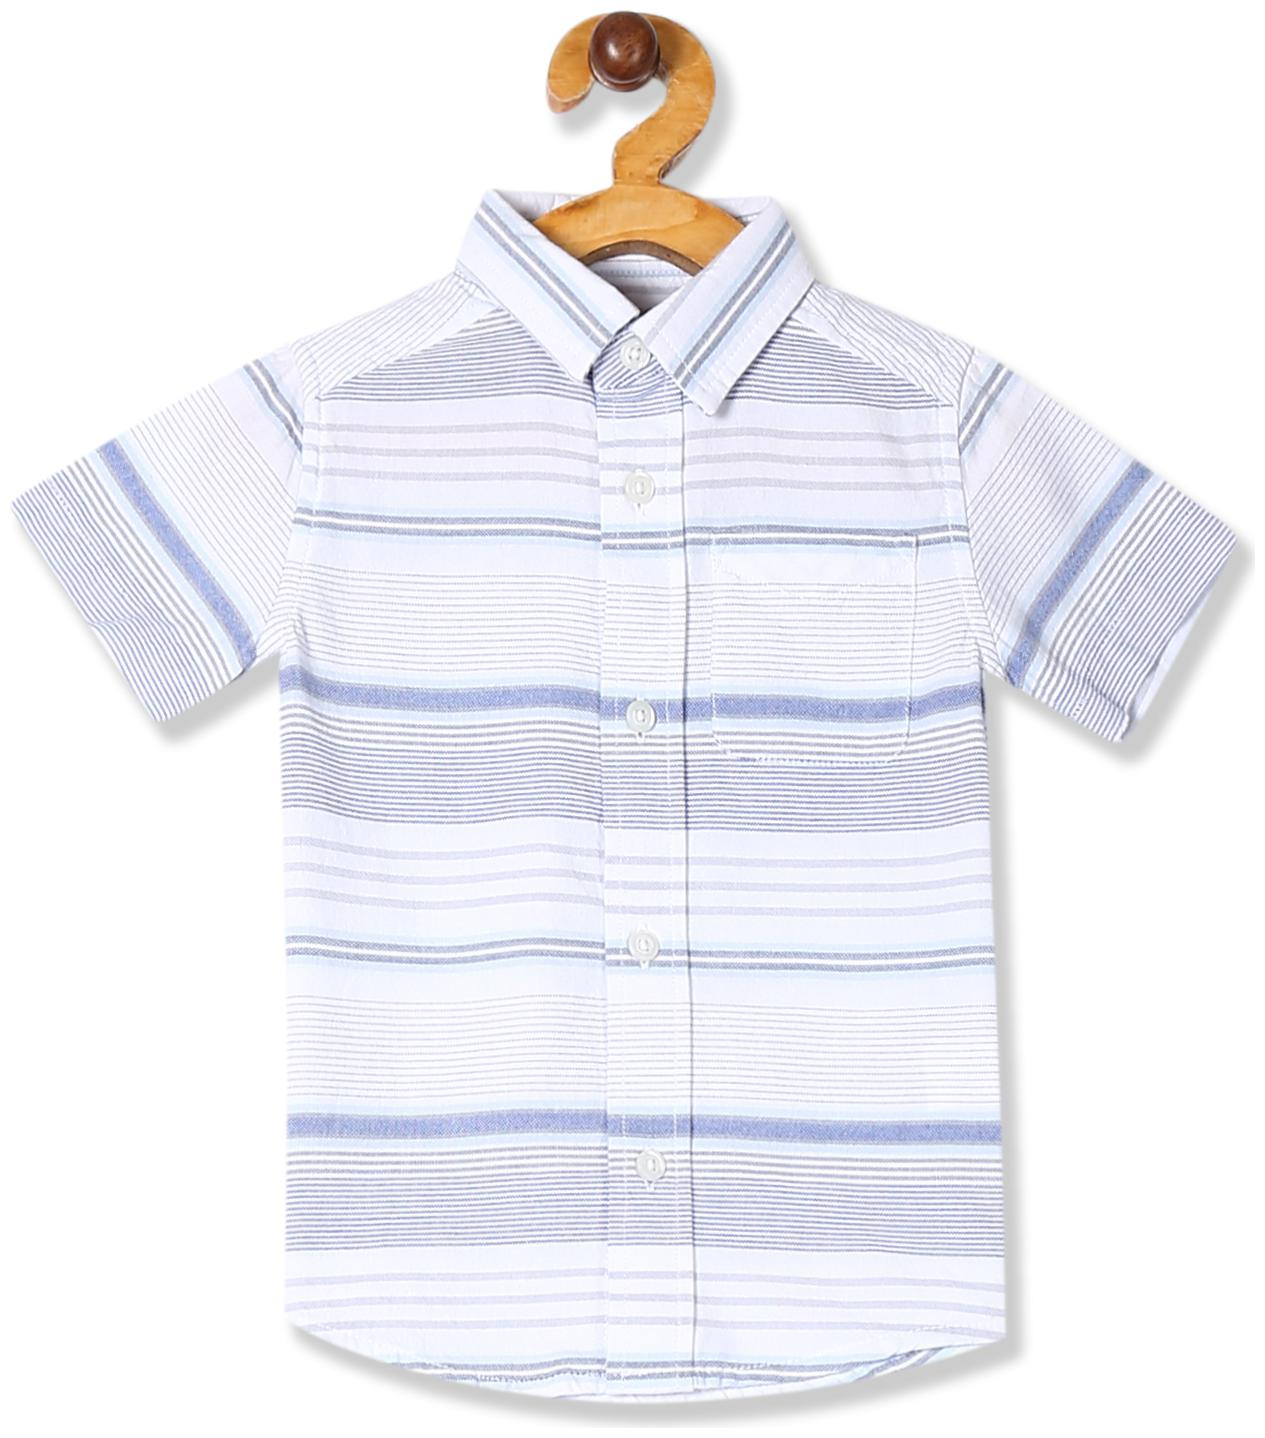 THE CHILDREN'S PLACE Cotton Striped Shirt for Baby Boy   Blue